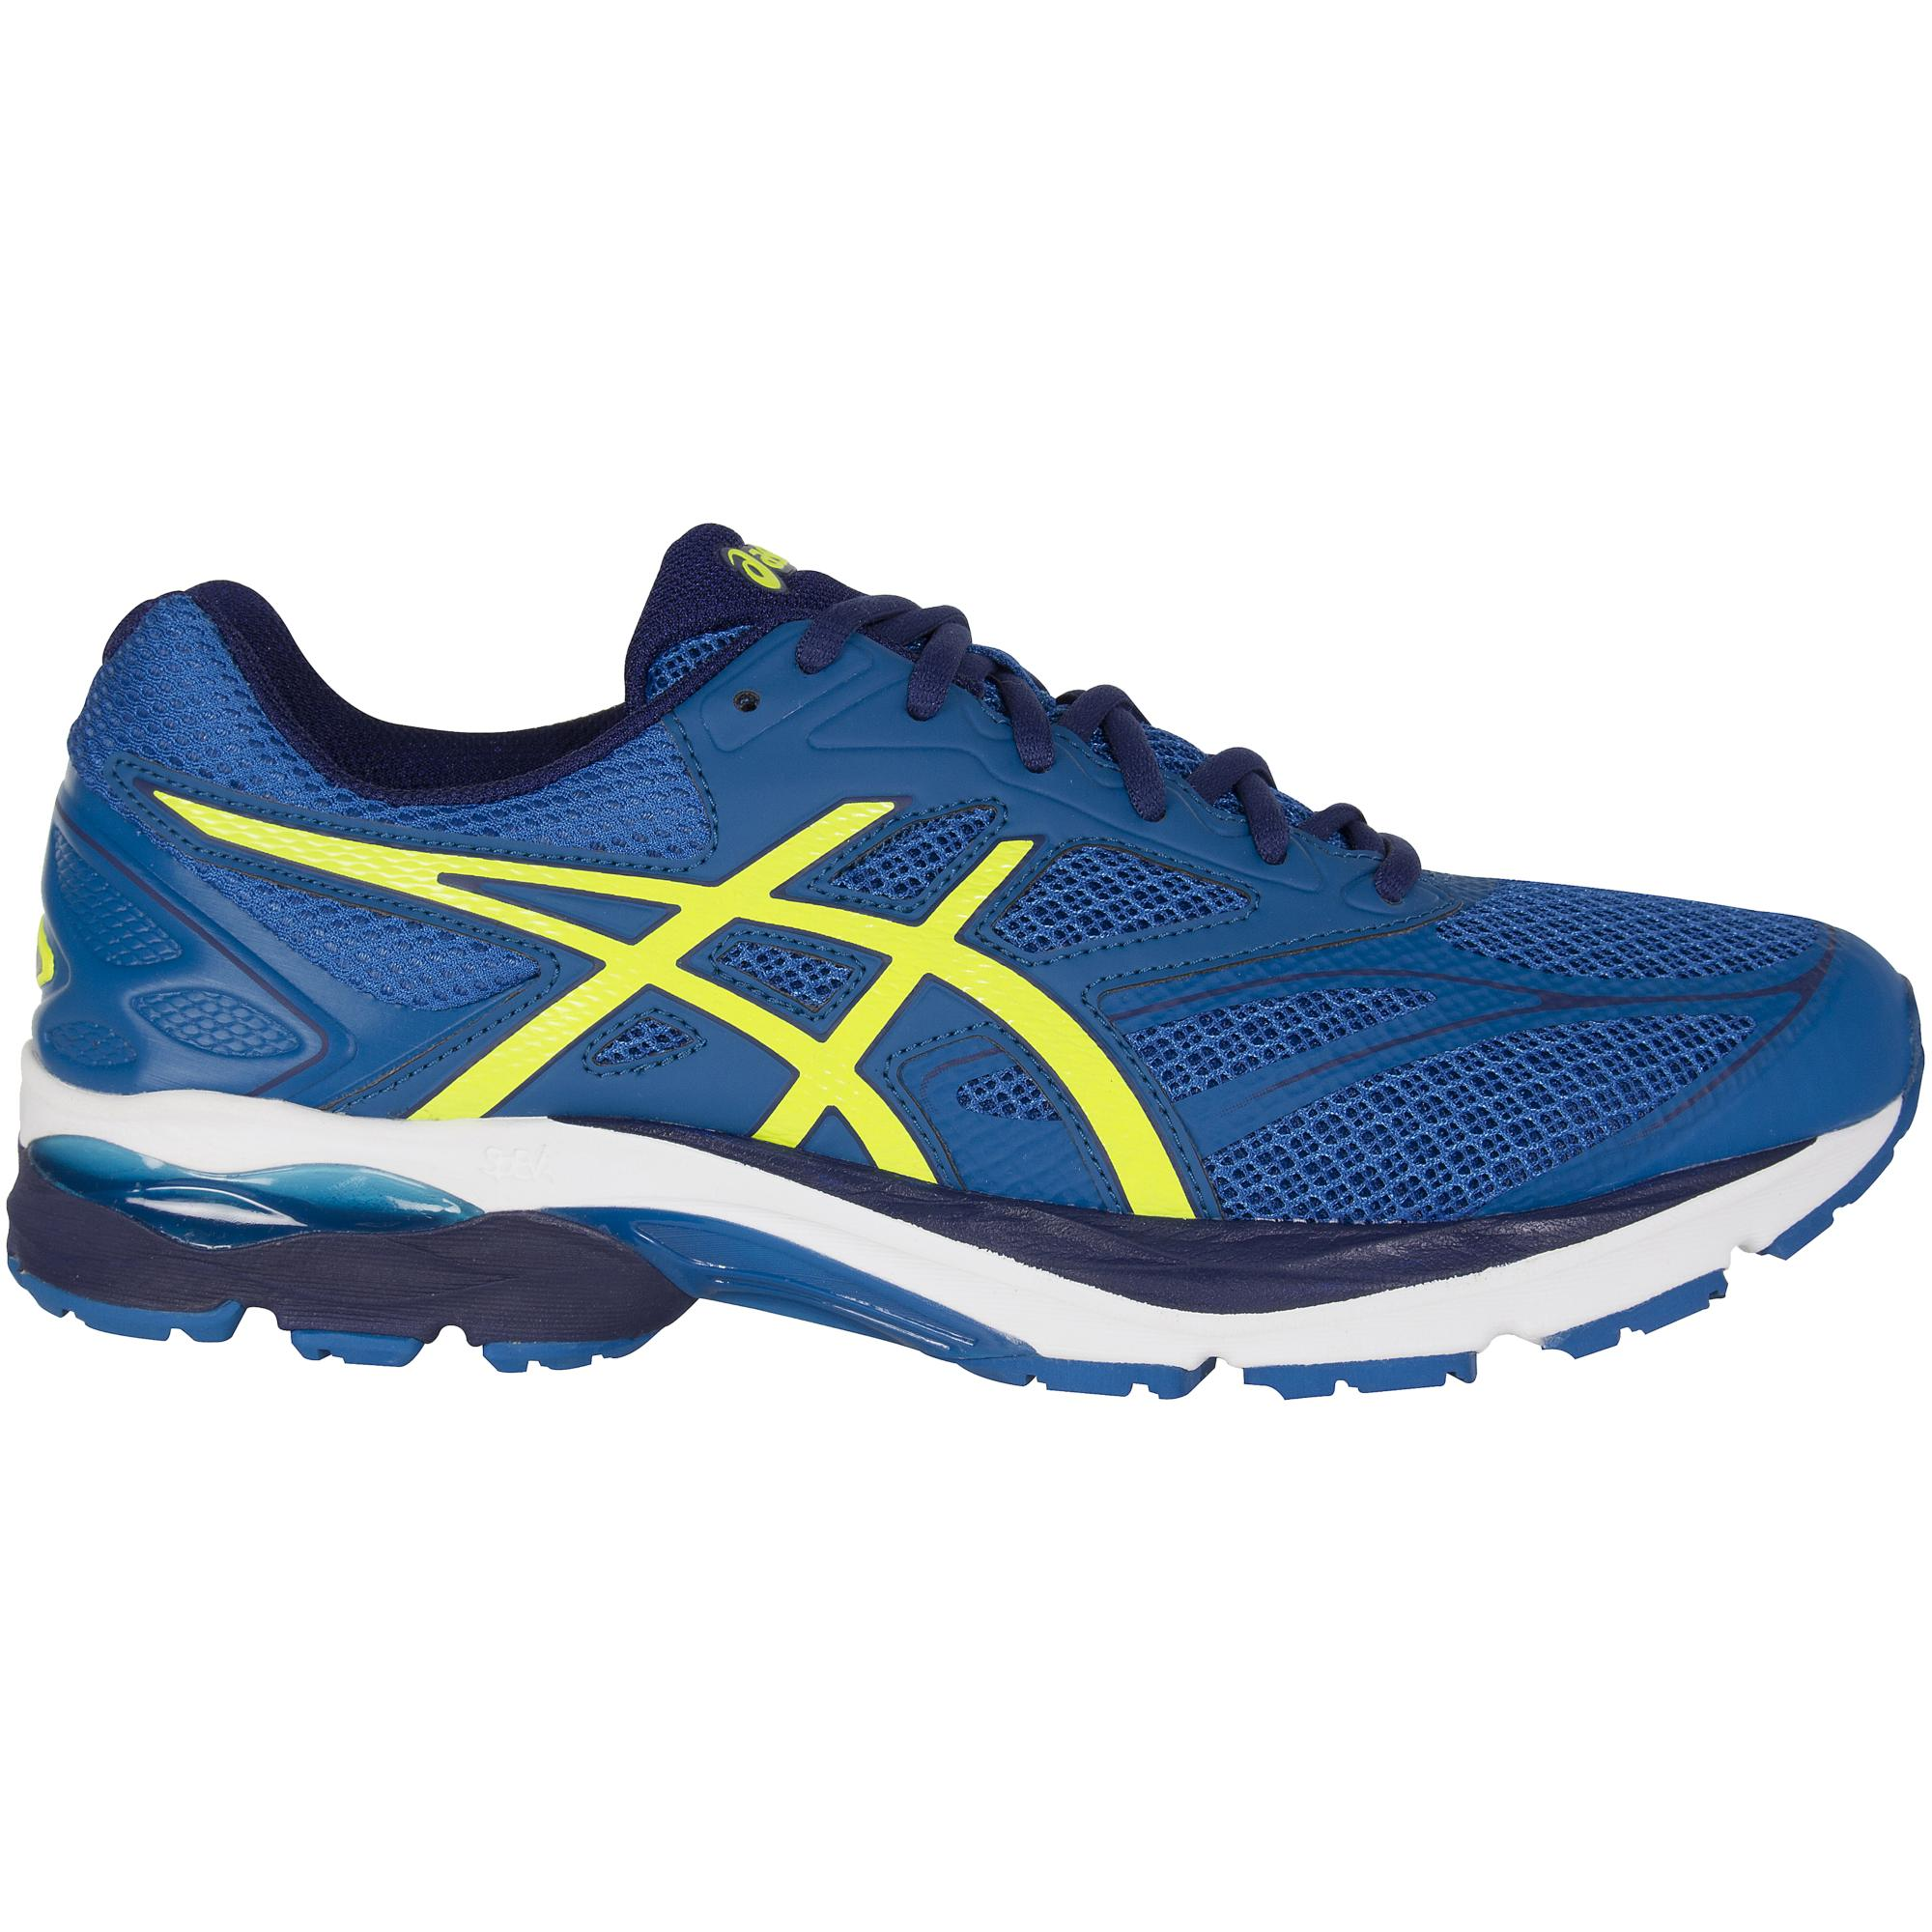 Asics Mens GEL Pulse 8 Running Shoes Thunder Blue